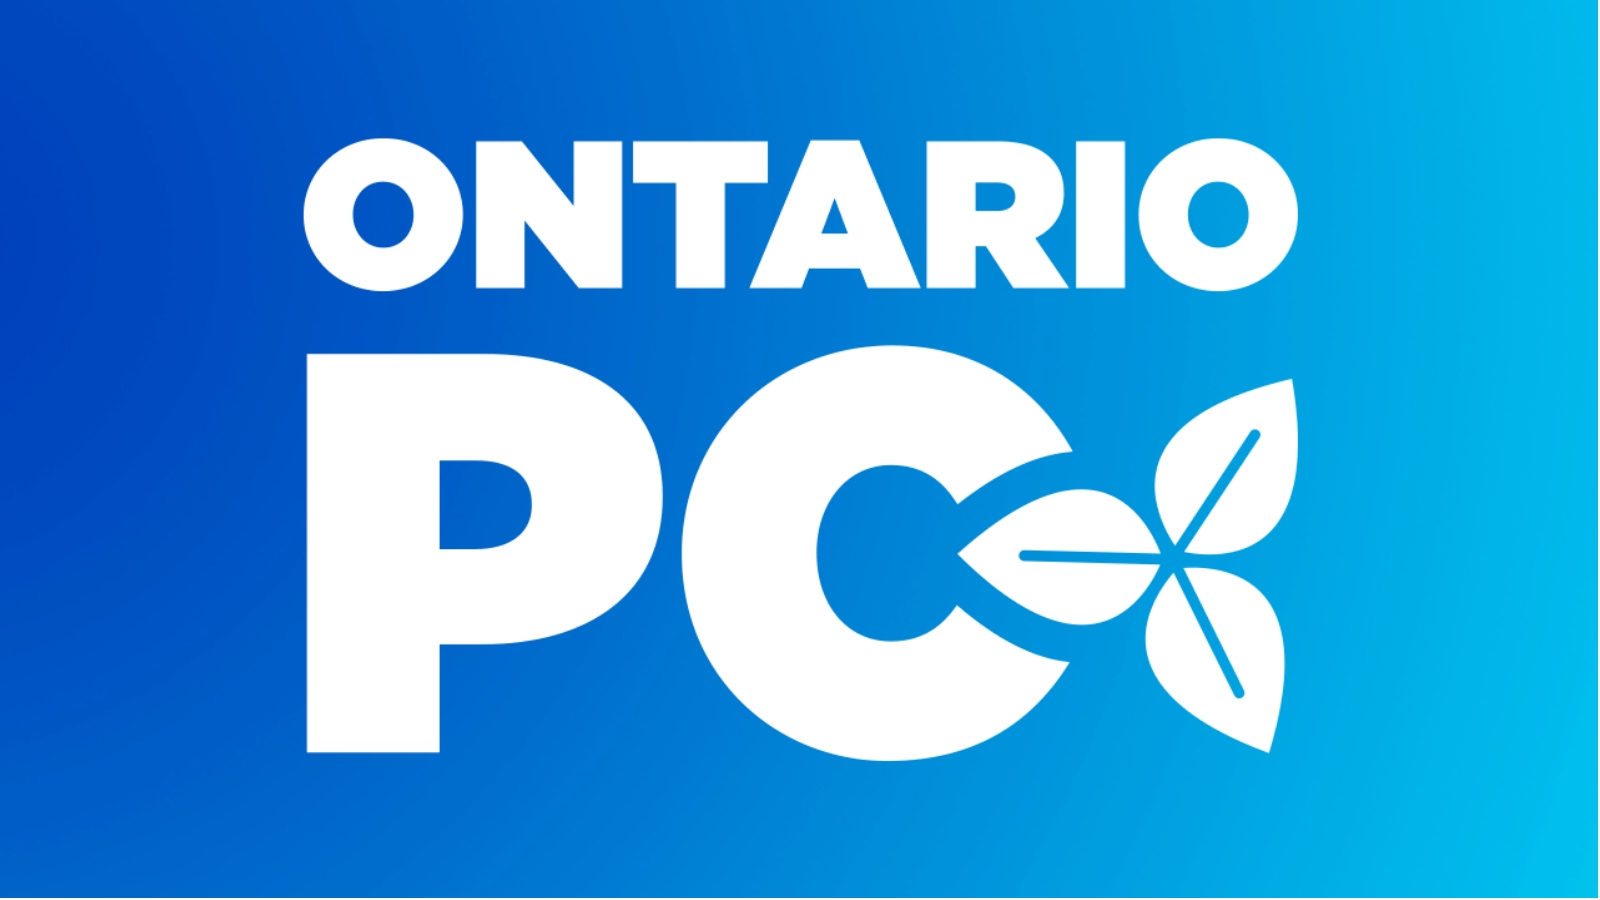 Statement from Ontario PC Leader Patrick Brown on the resignation of Christine Elliott